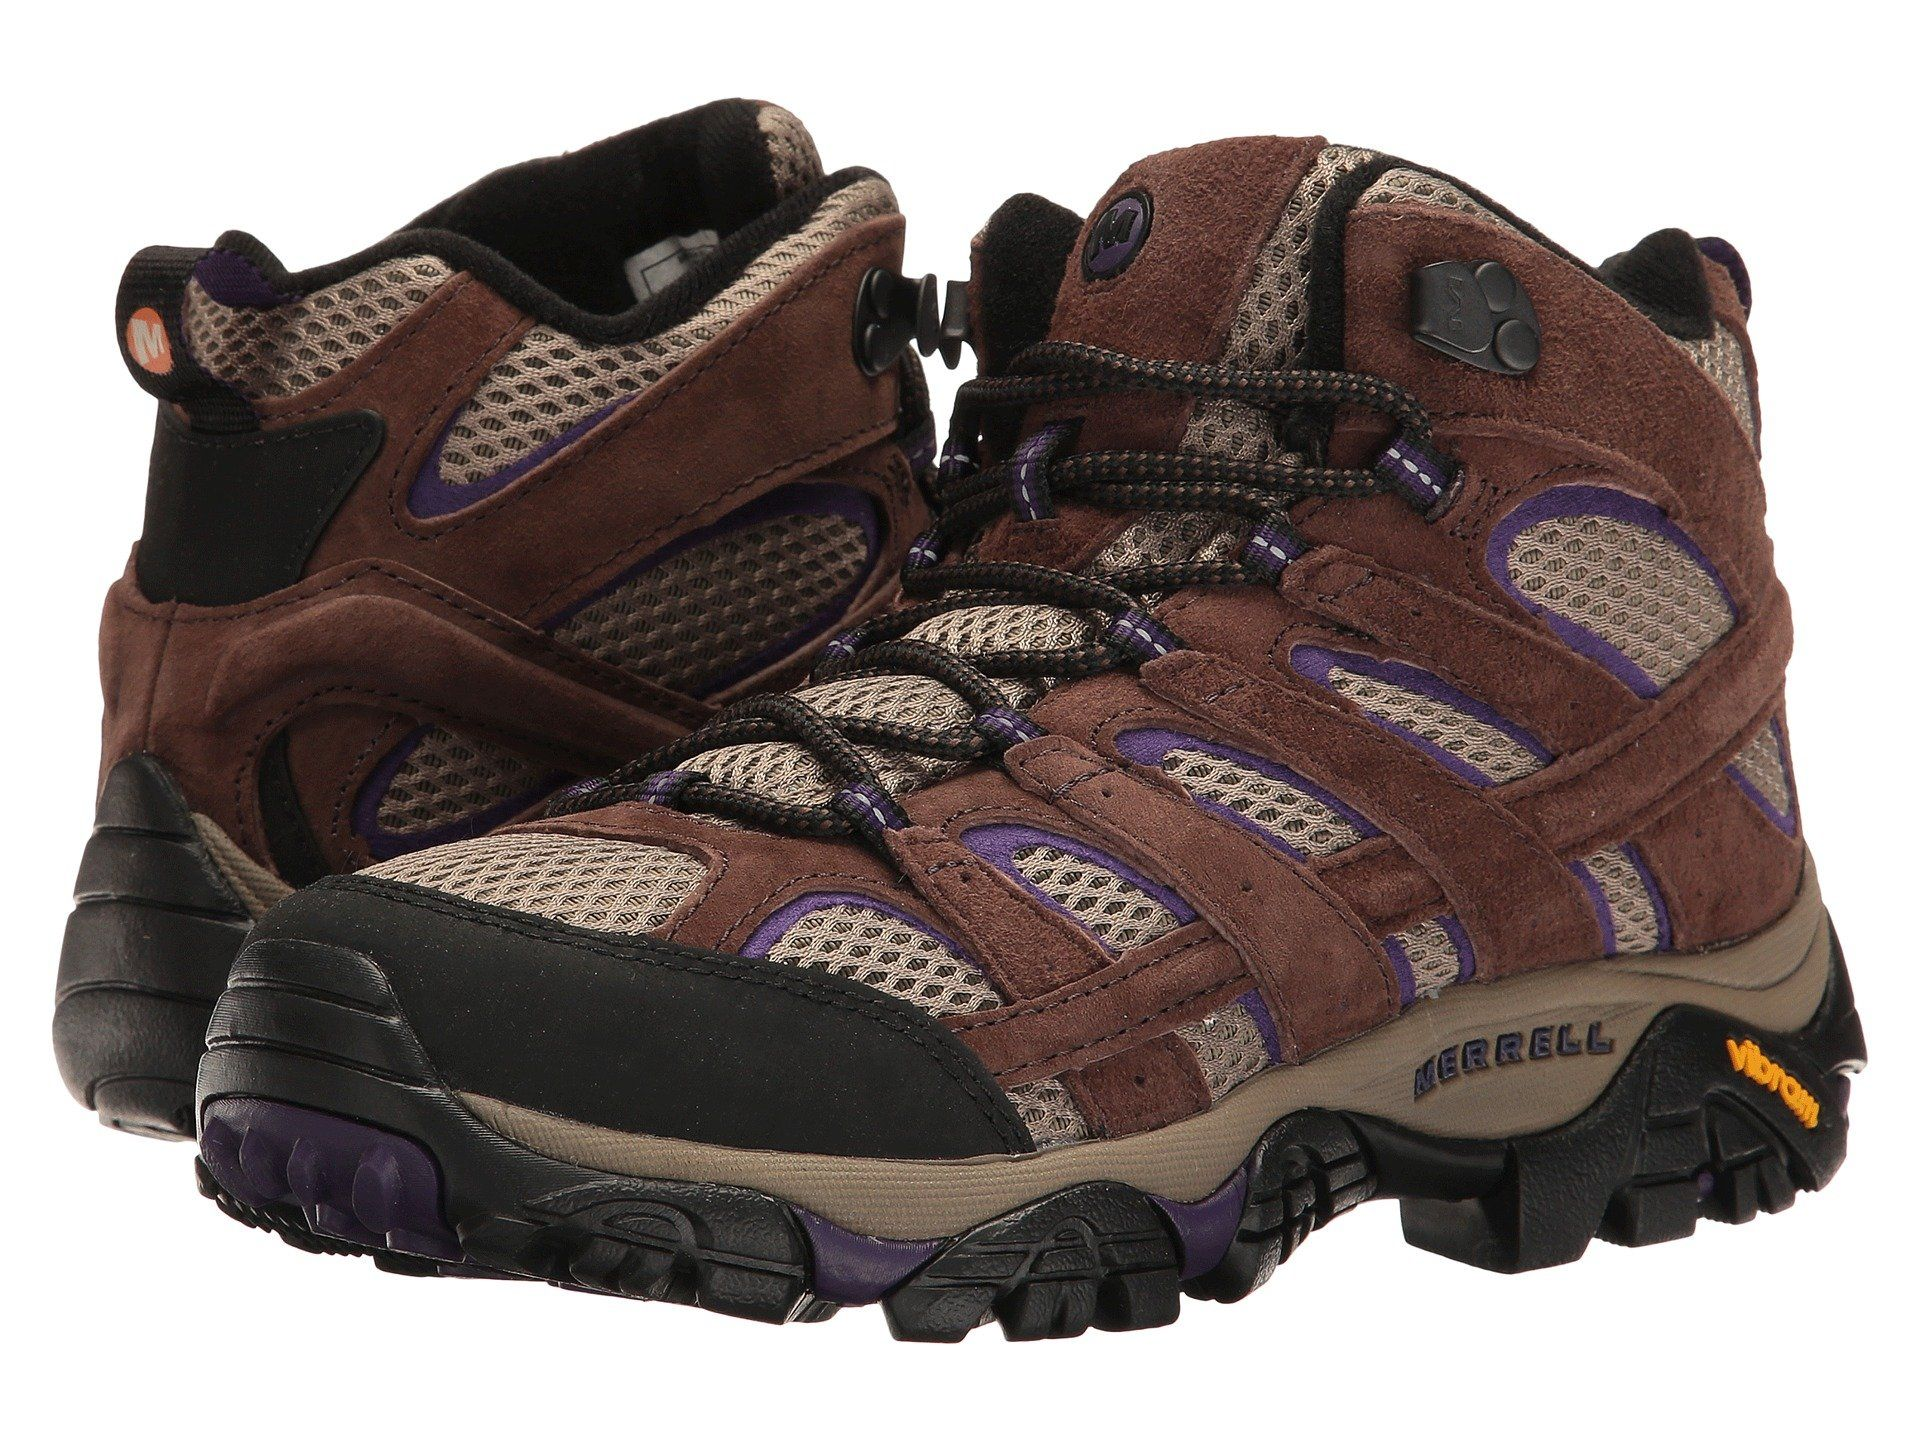 22f50e7a6ced5 Best Hiking Boots - Hiking Boot Reviews 2019